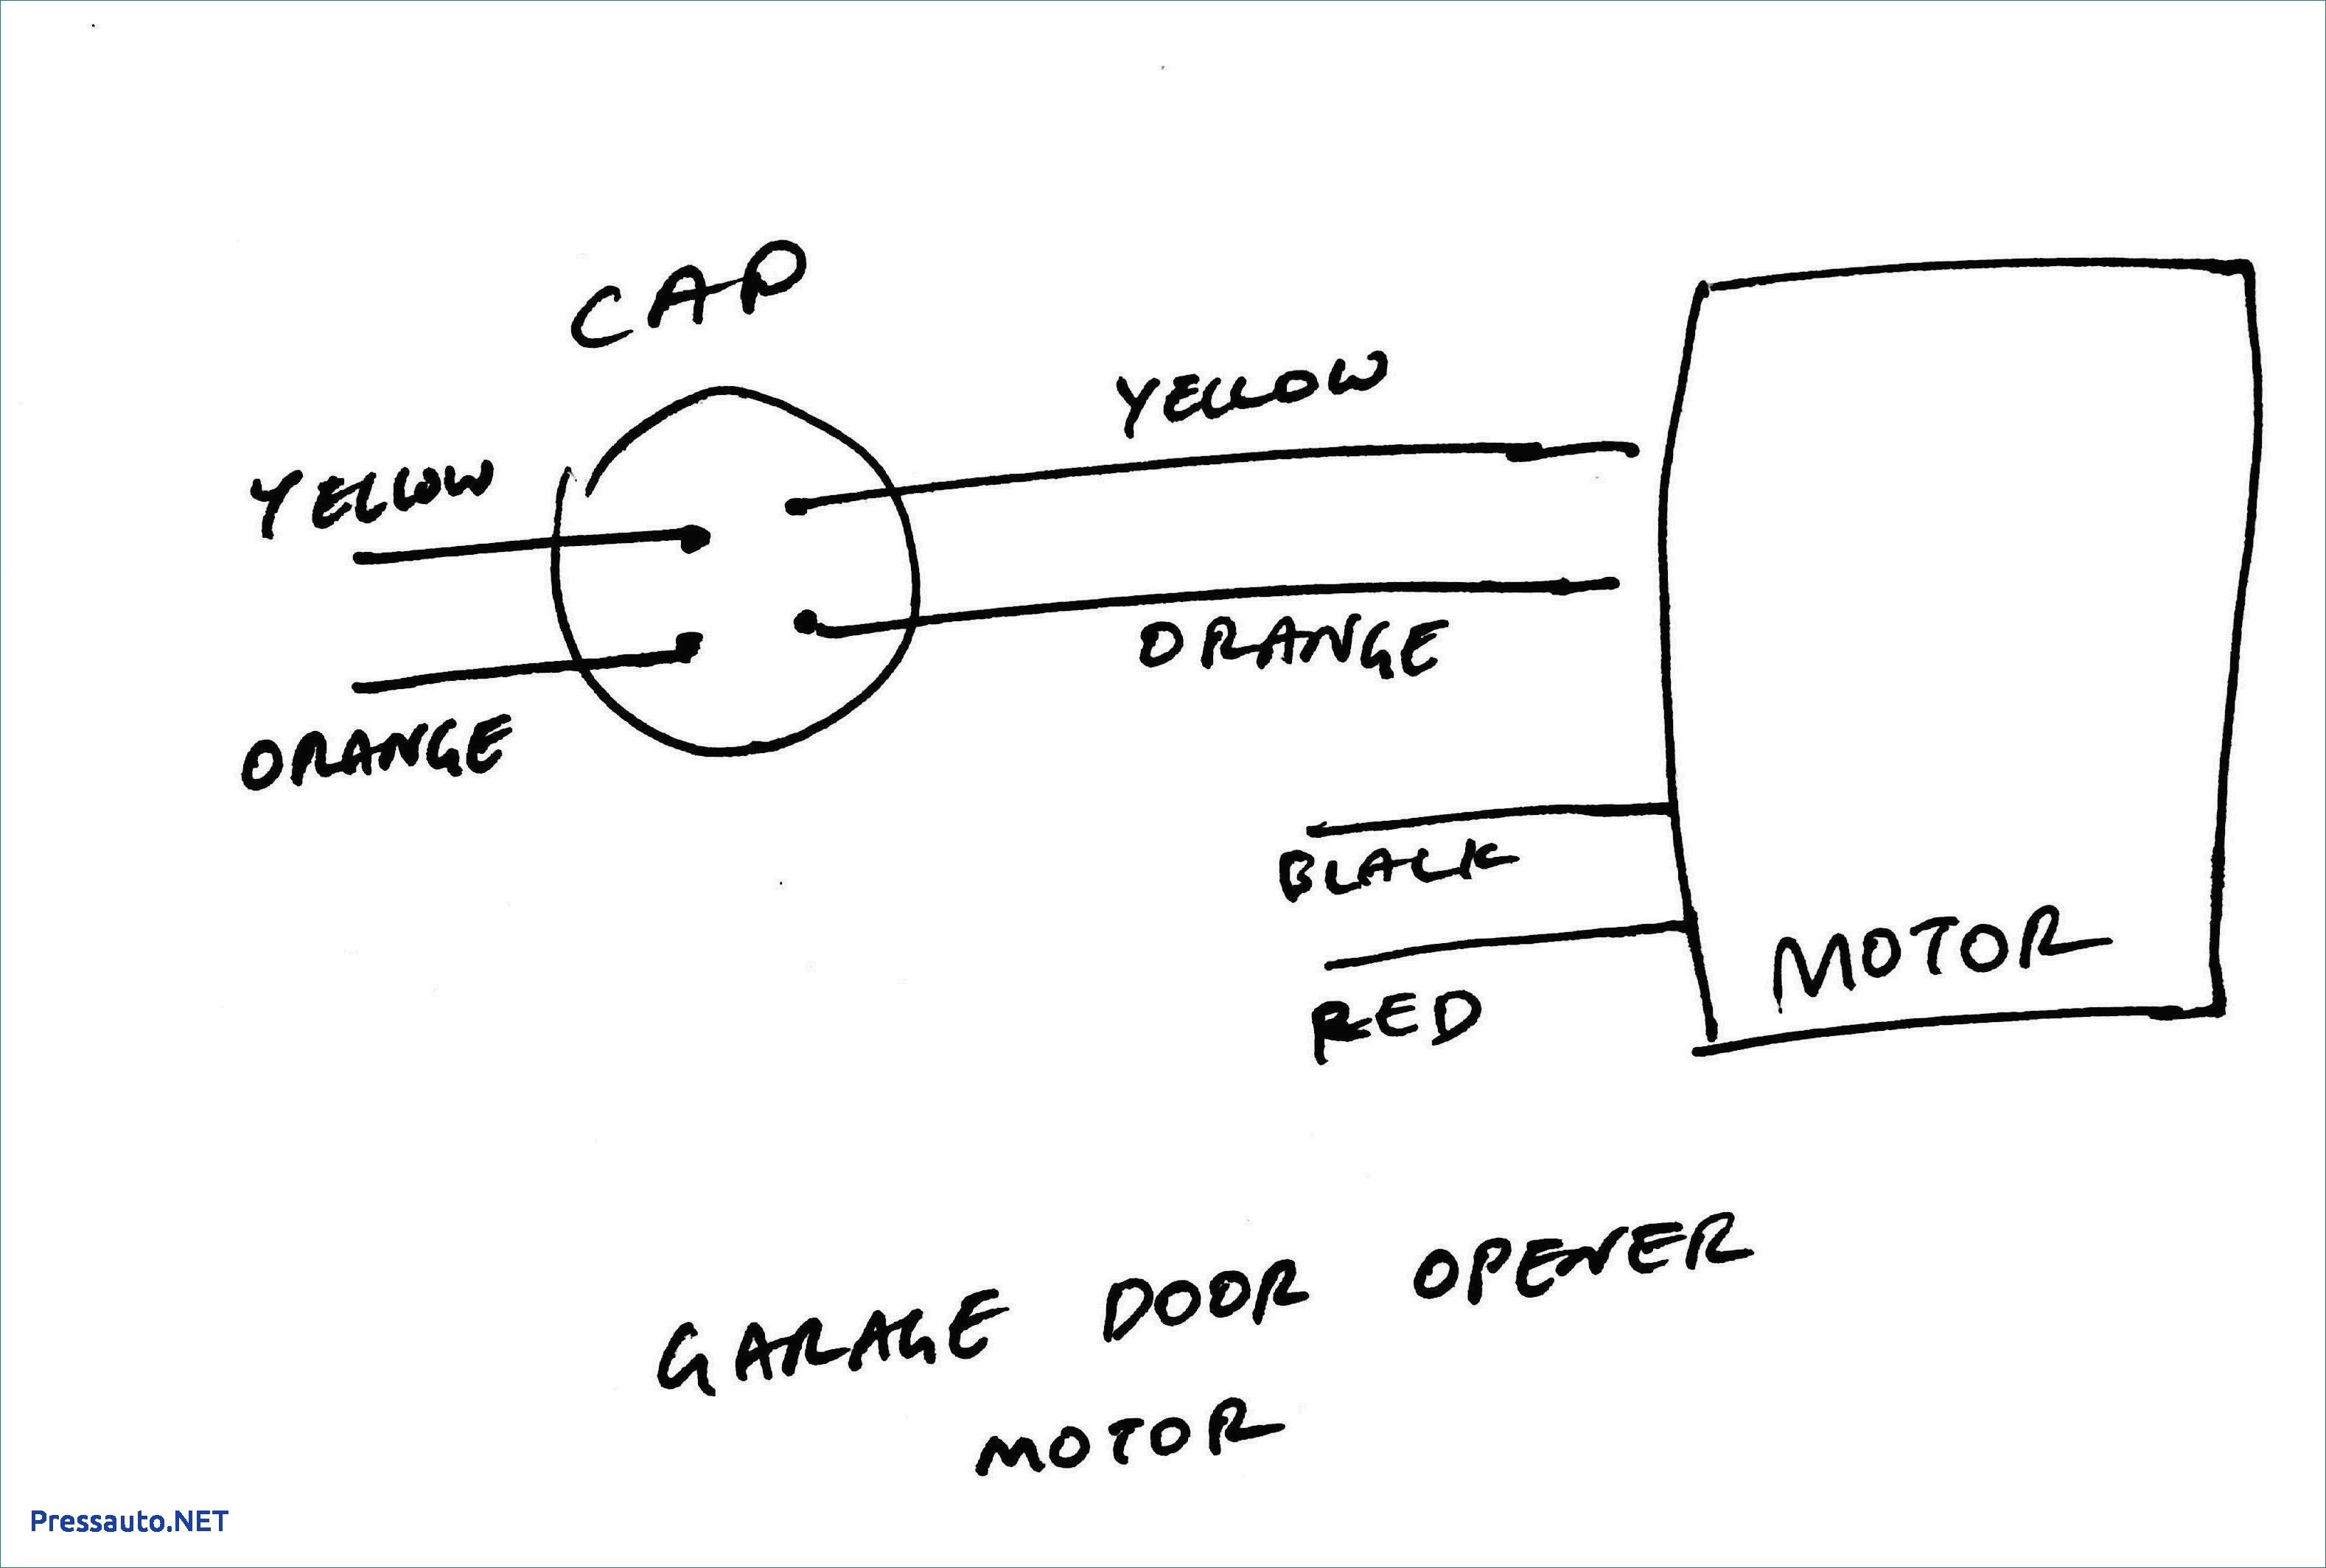 electric motor capacitor wiring diagram Collection-Exhaust Fan Wiring Diagram with Capacitor New New Wiring Diagram for Electric Motor with Capacitor 7-q